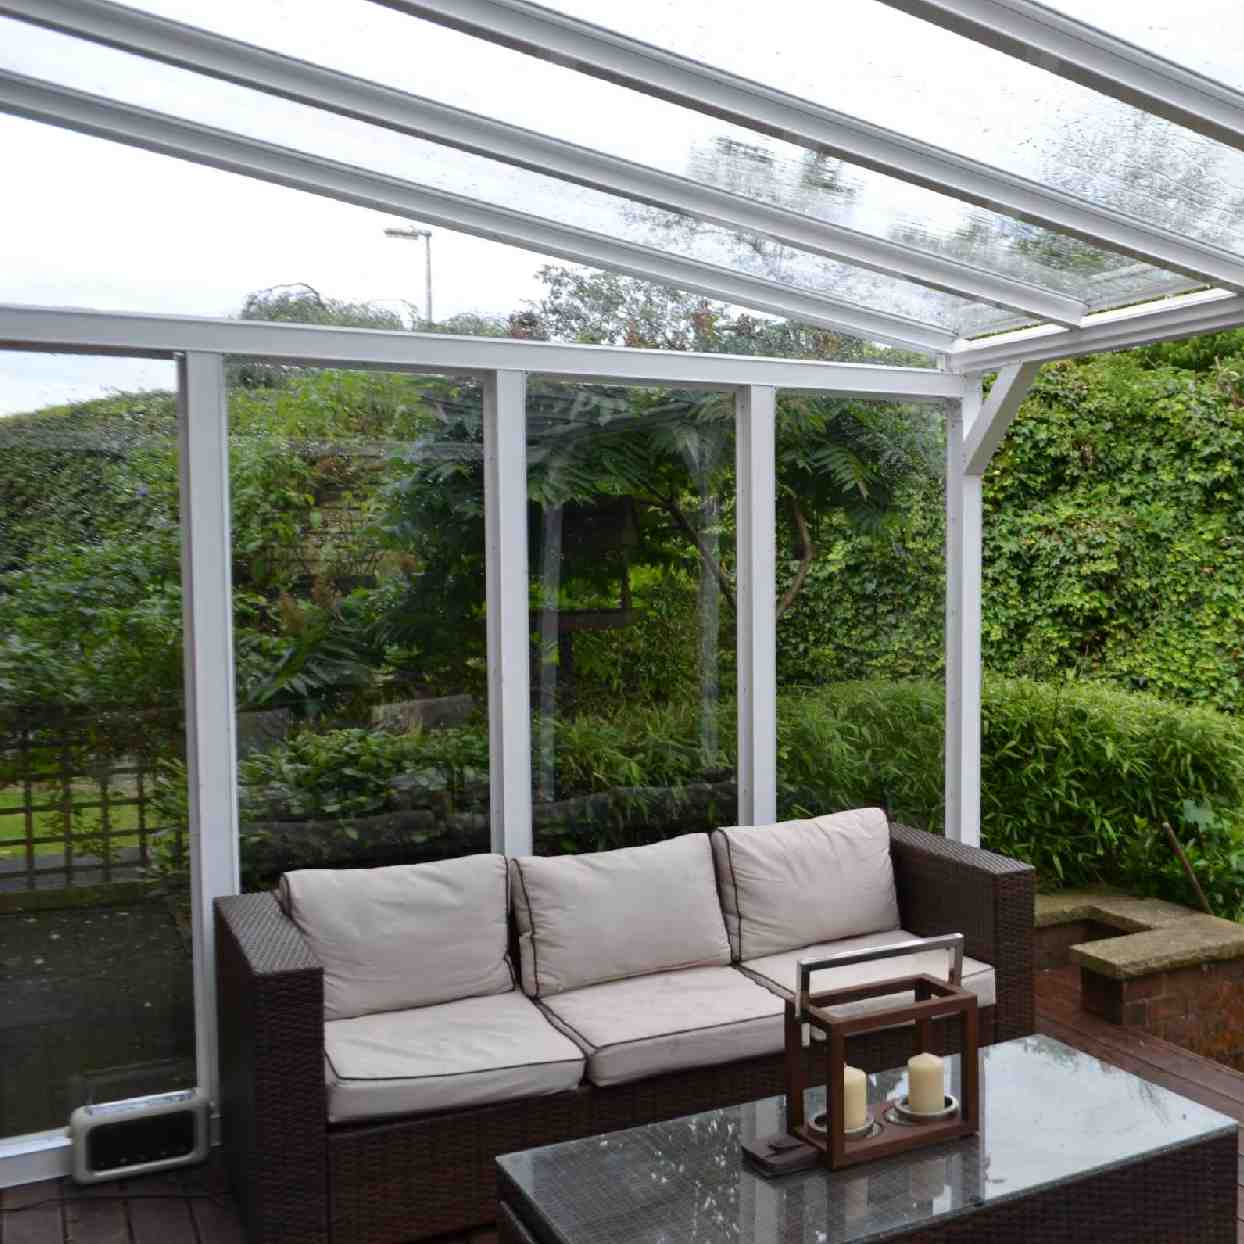 Buy Omega Verandah with 16mm Polycarbonate Glazing - 10.2m (W) x 4.5m (P), (5) Supporting Posts online today